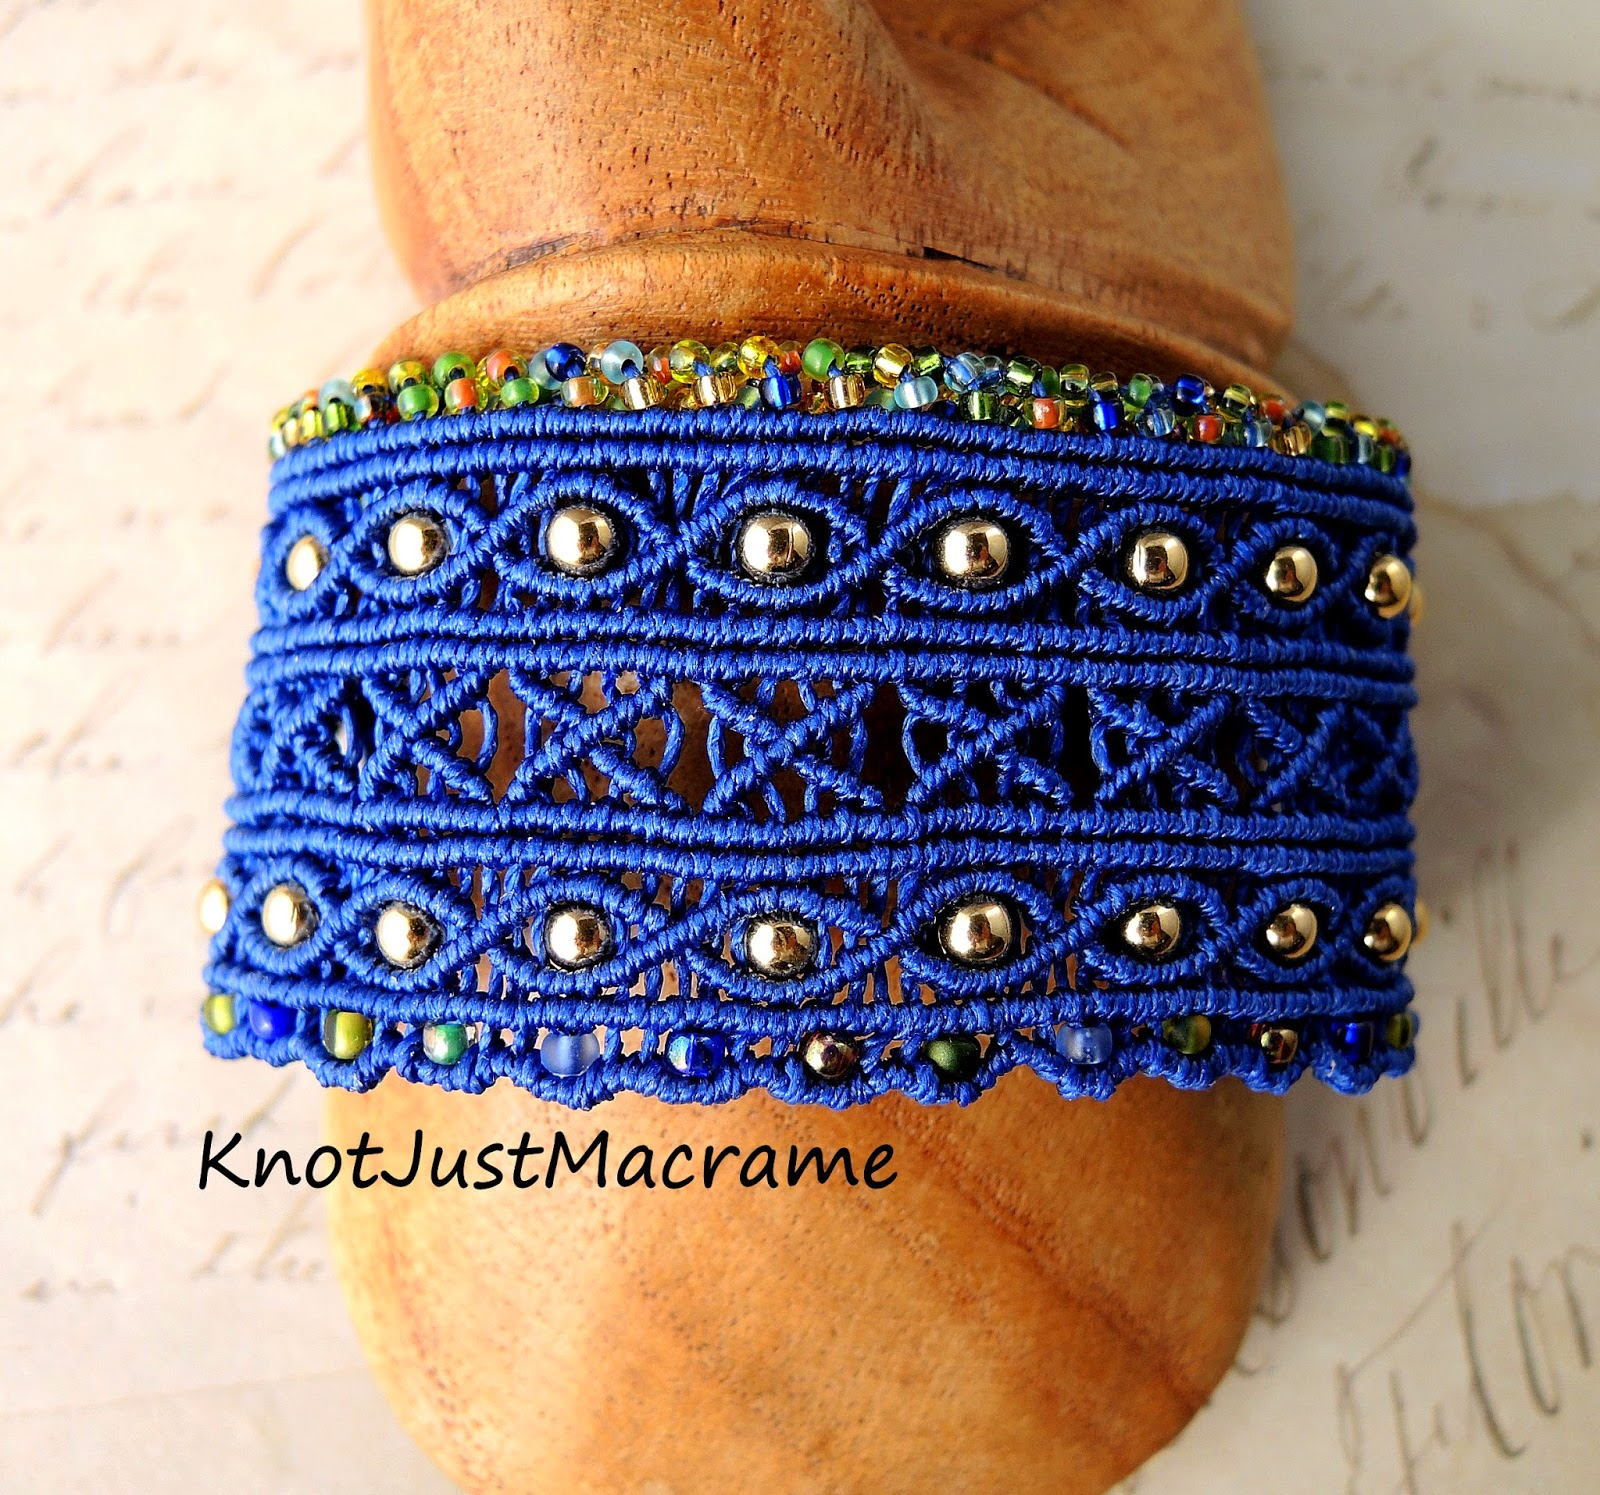 Blue macrame cuff from Knot Just Macrame